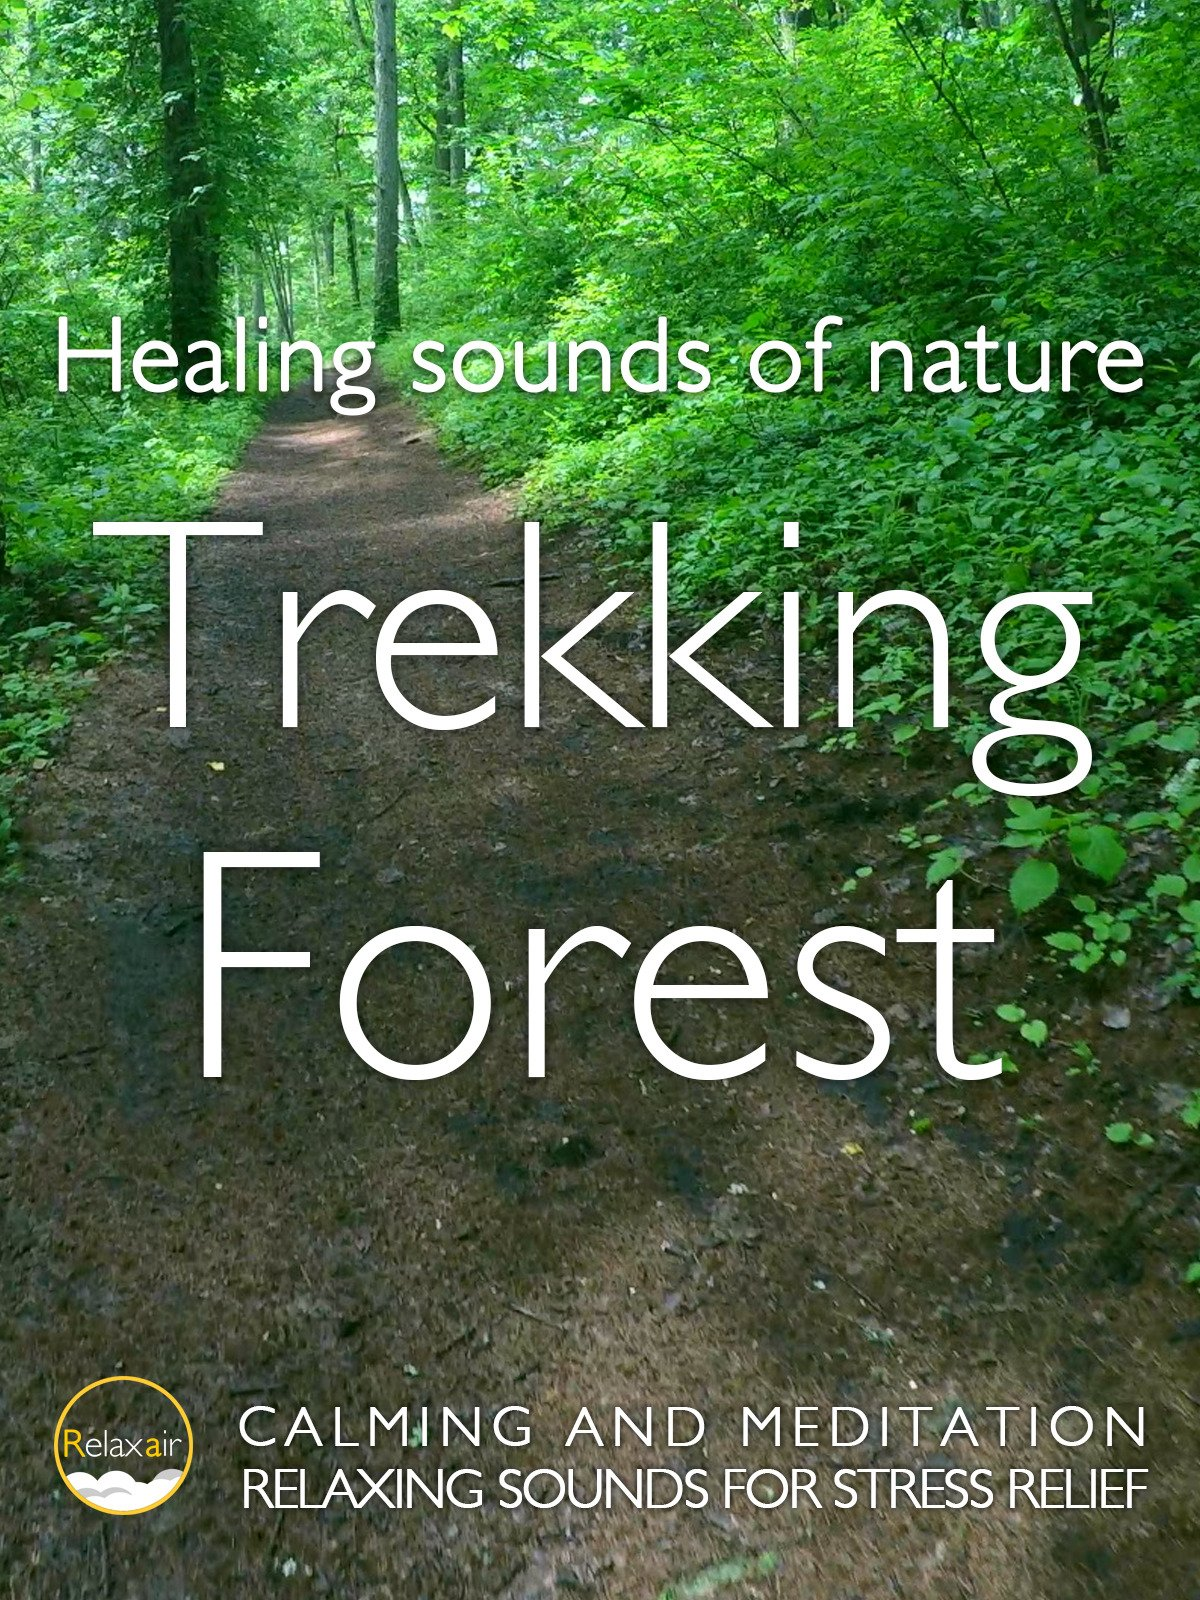 Healing Sound of Nature Trekking Forest Calming and Meditation Relaxing Sound for Stress relief